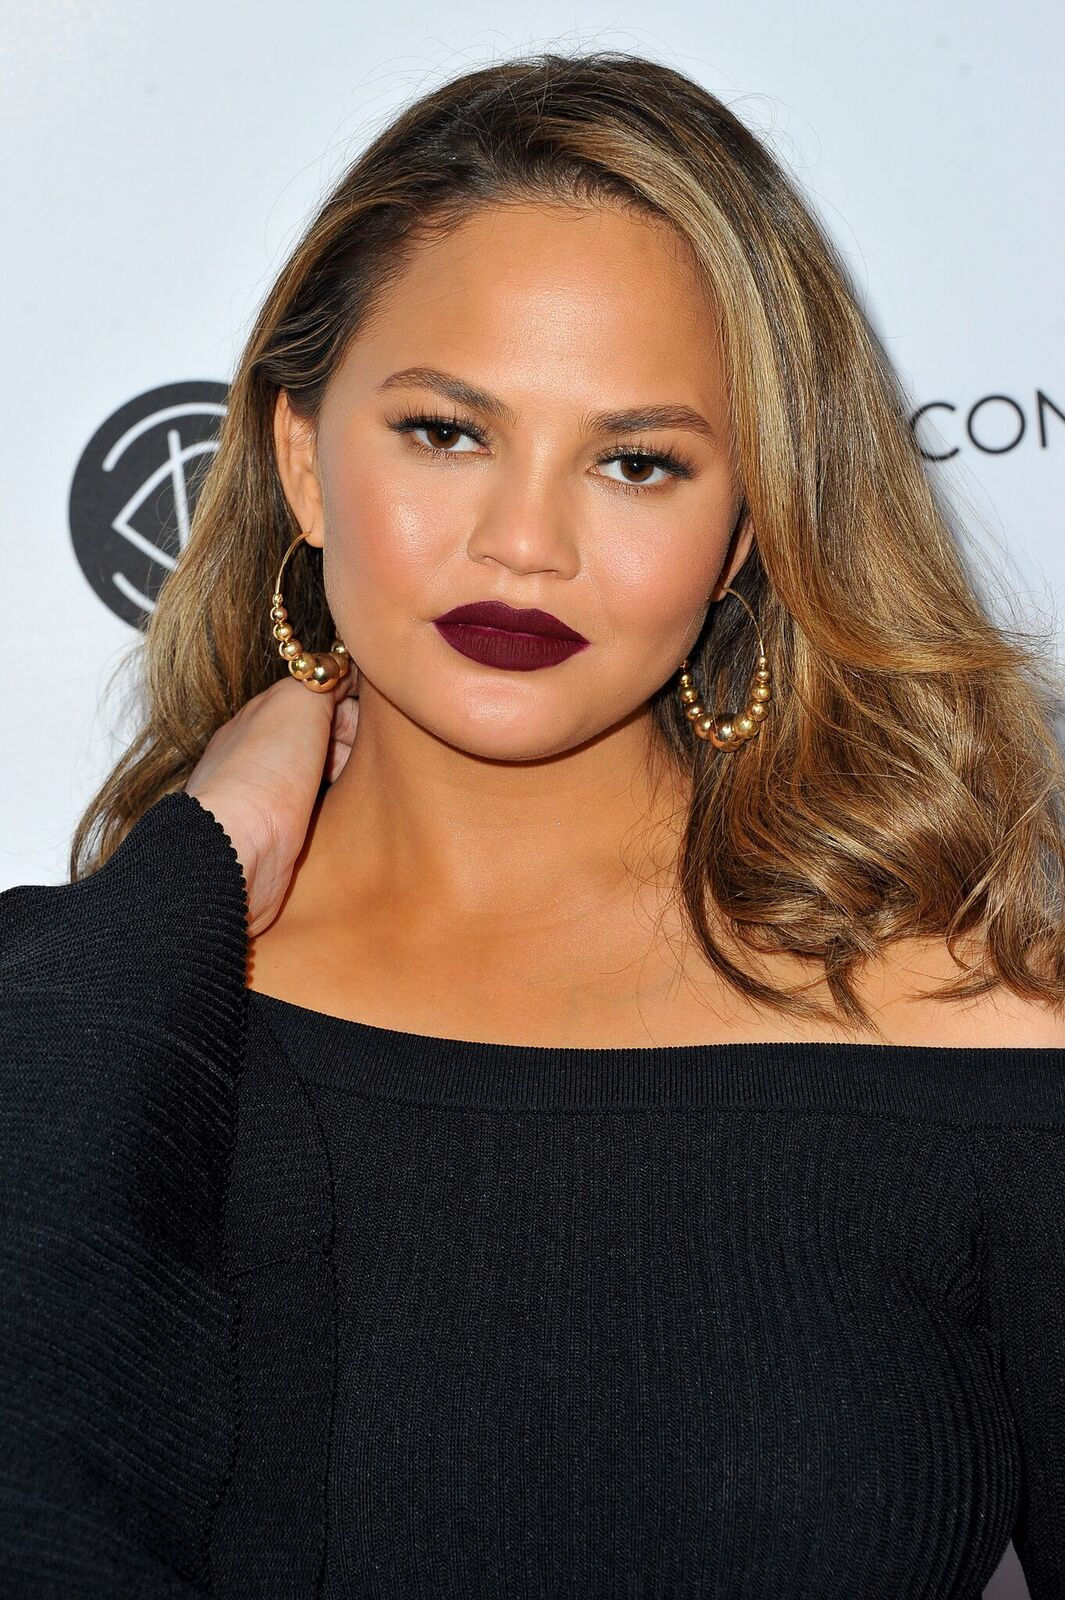 Model Chrissy Teigen attends the 5th Annual Beautycon Festival Los Angeles at Los Angeles Convention Center on August 13, 2017 in Los Angeles, California | Photo: Getty Images